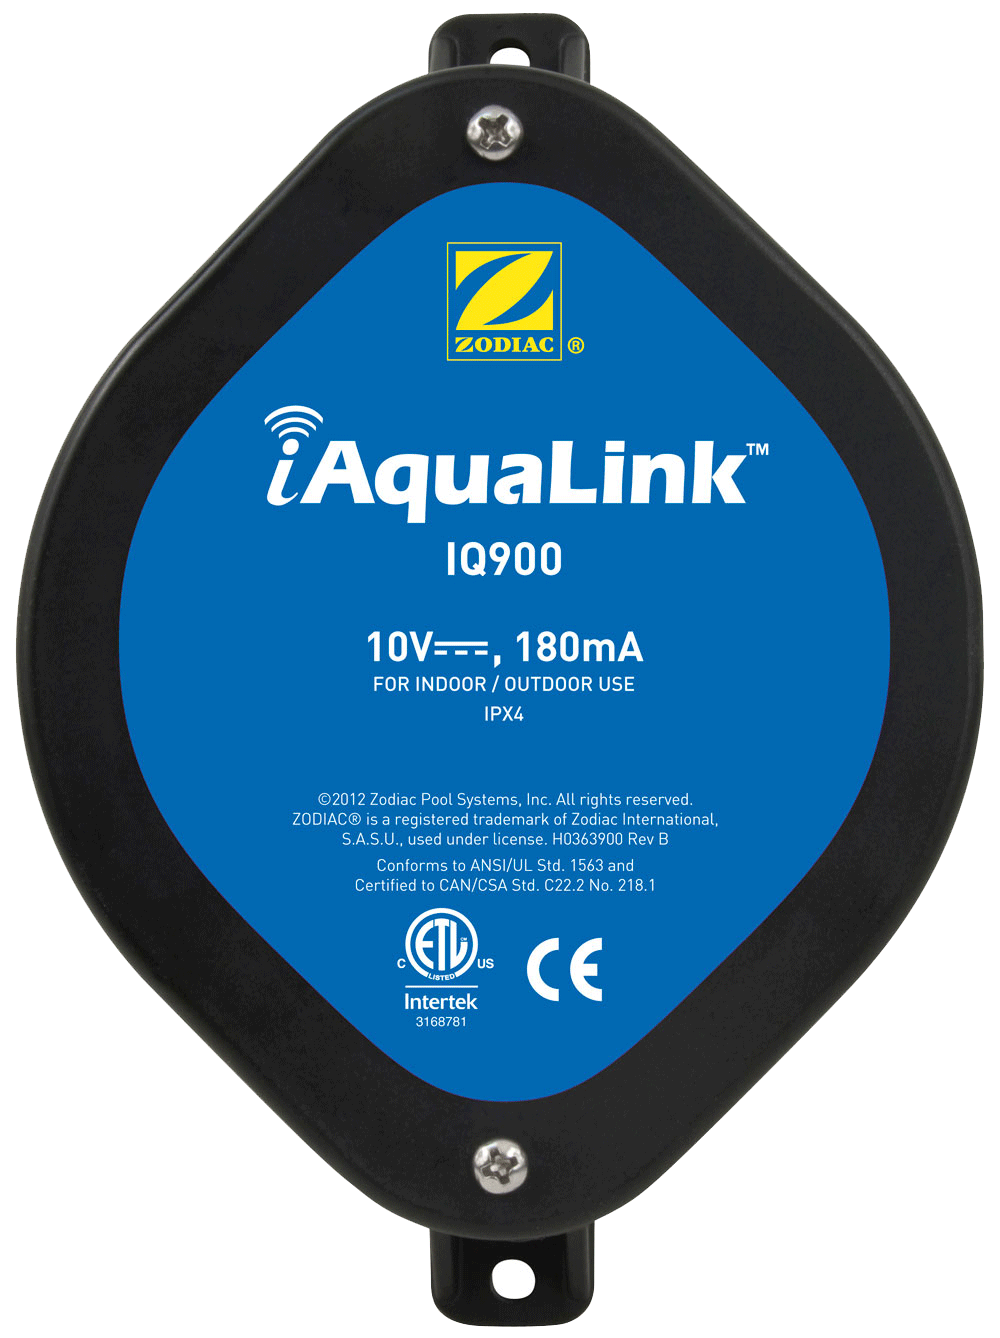 Zodiac Pool Care Europe product manuals   swimming pool automation & mobile apps